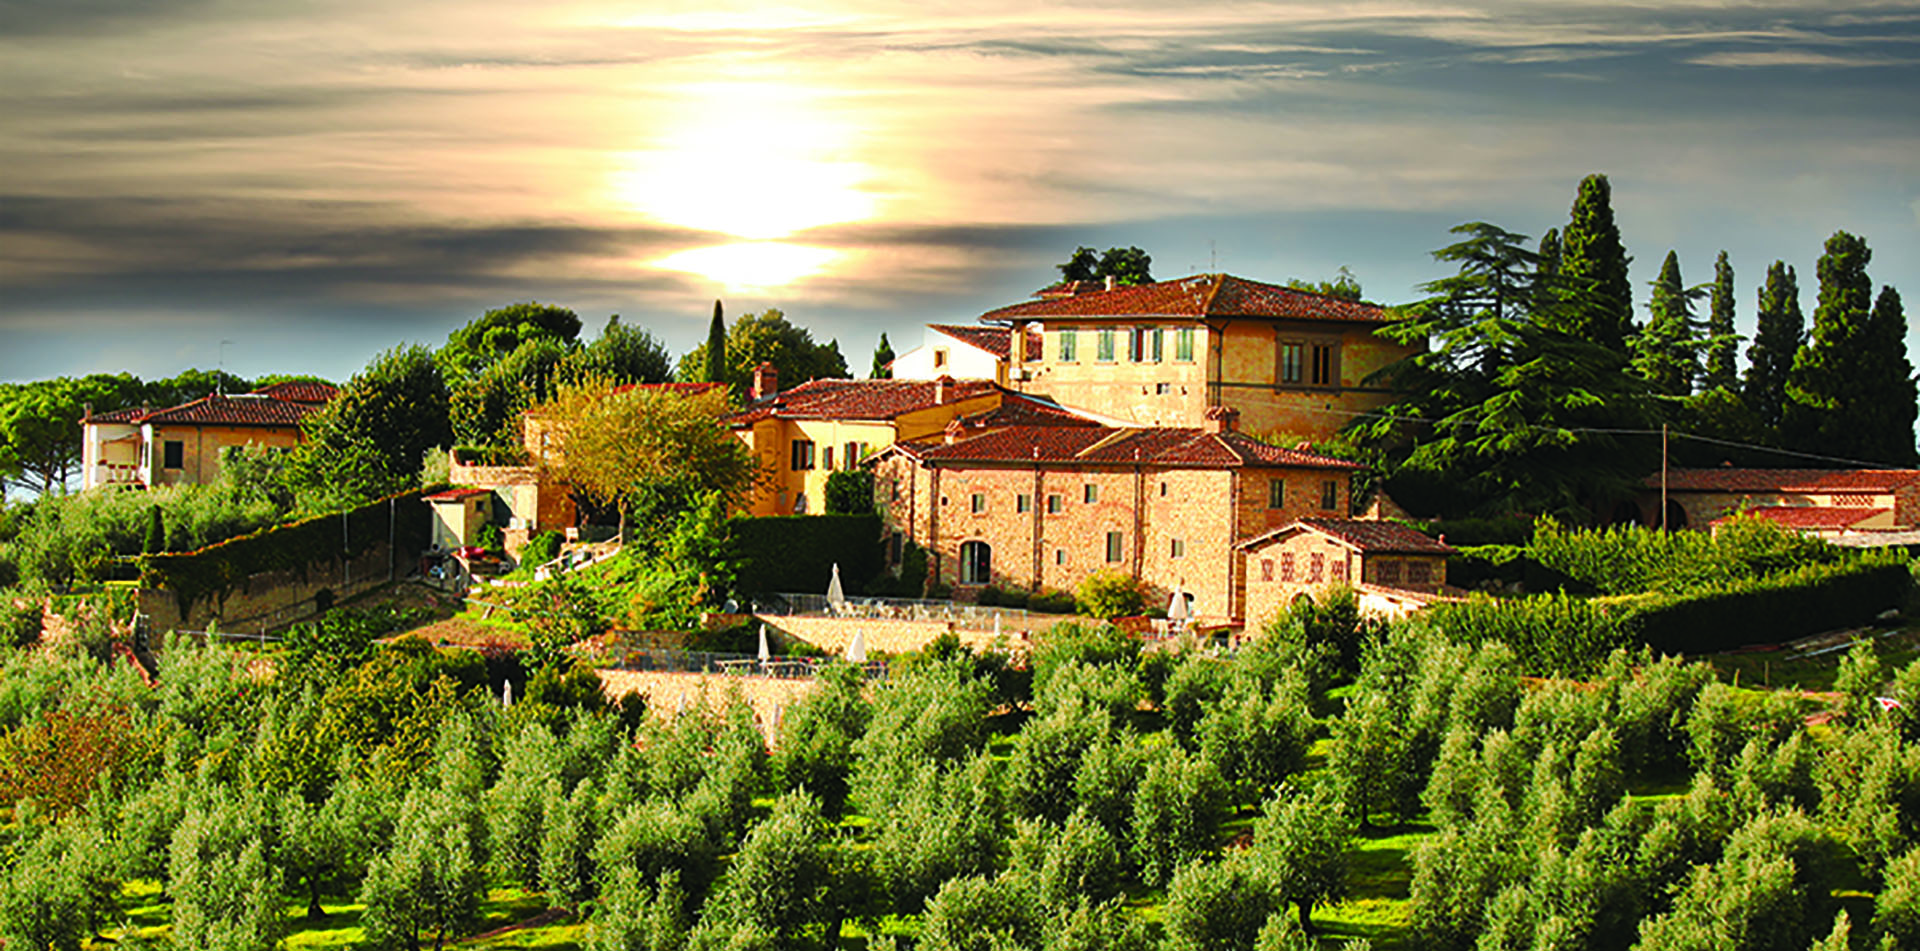 Europe Italy beautiful olive farm villa in Tuscany countryside at sunset - luxury vacation destinations